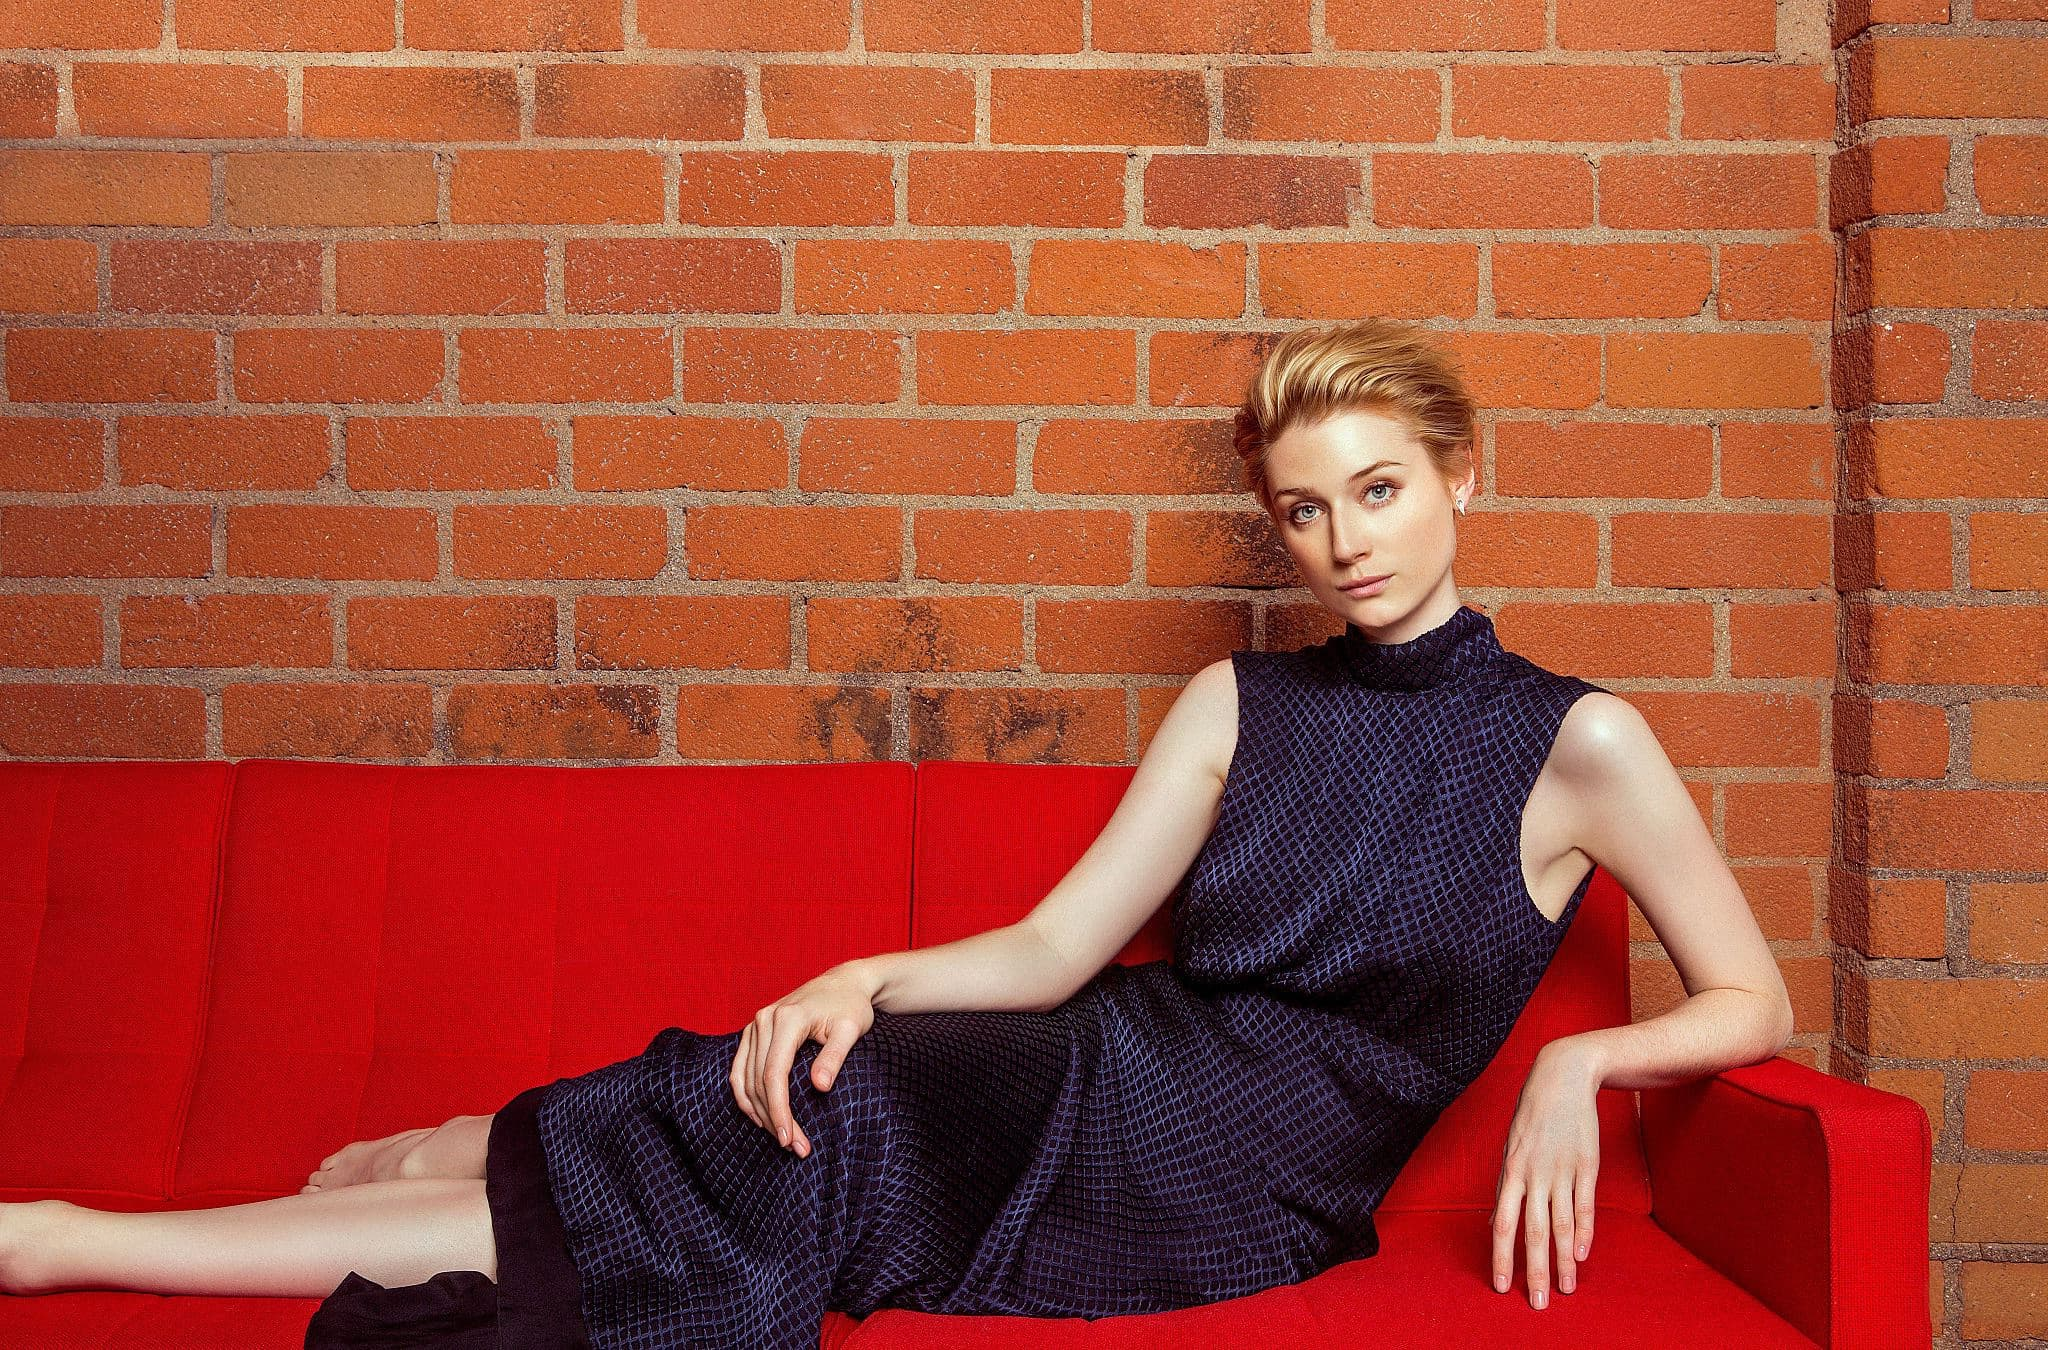 Elizabeth Debicki wallpapers, on the grass 20+ images High Quality Naomi Watts